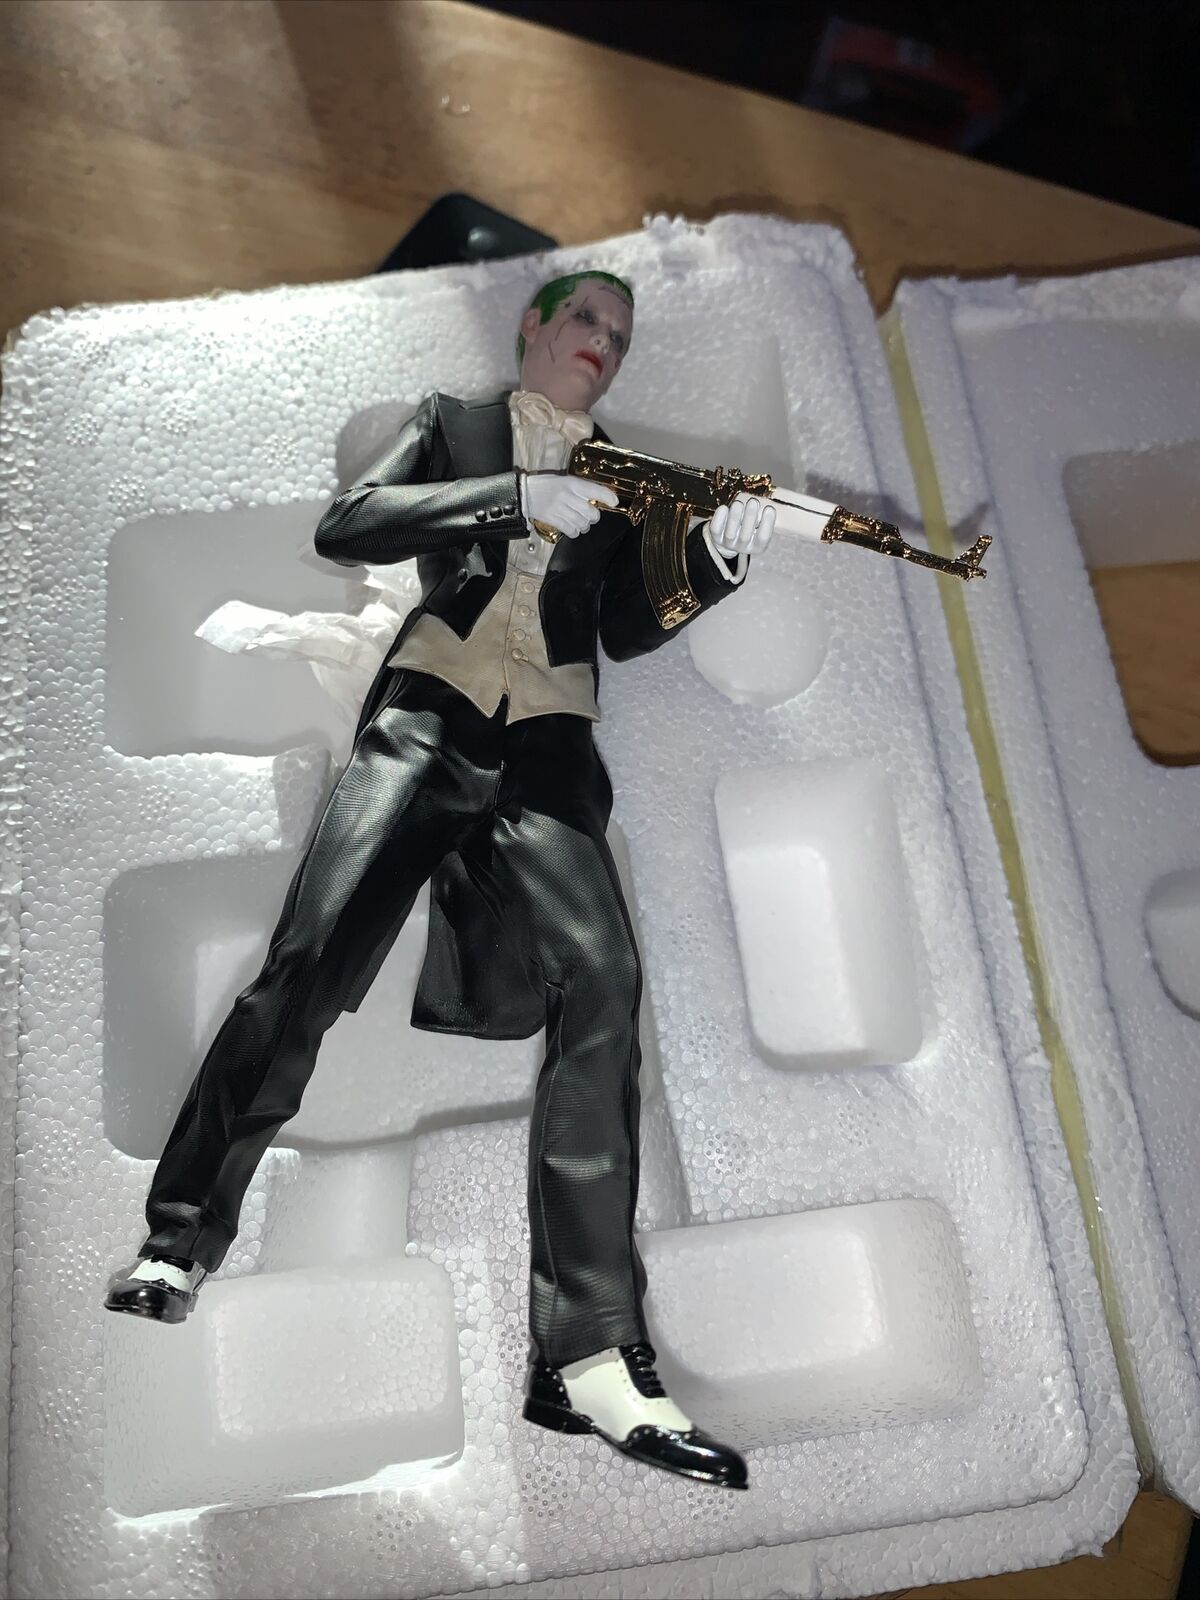 Iron Studios Suicide Squad With Joker Iron Studio Statues New Opened To take Pic on eBay thumbnail